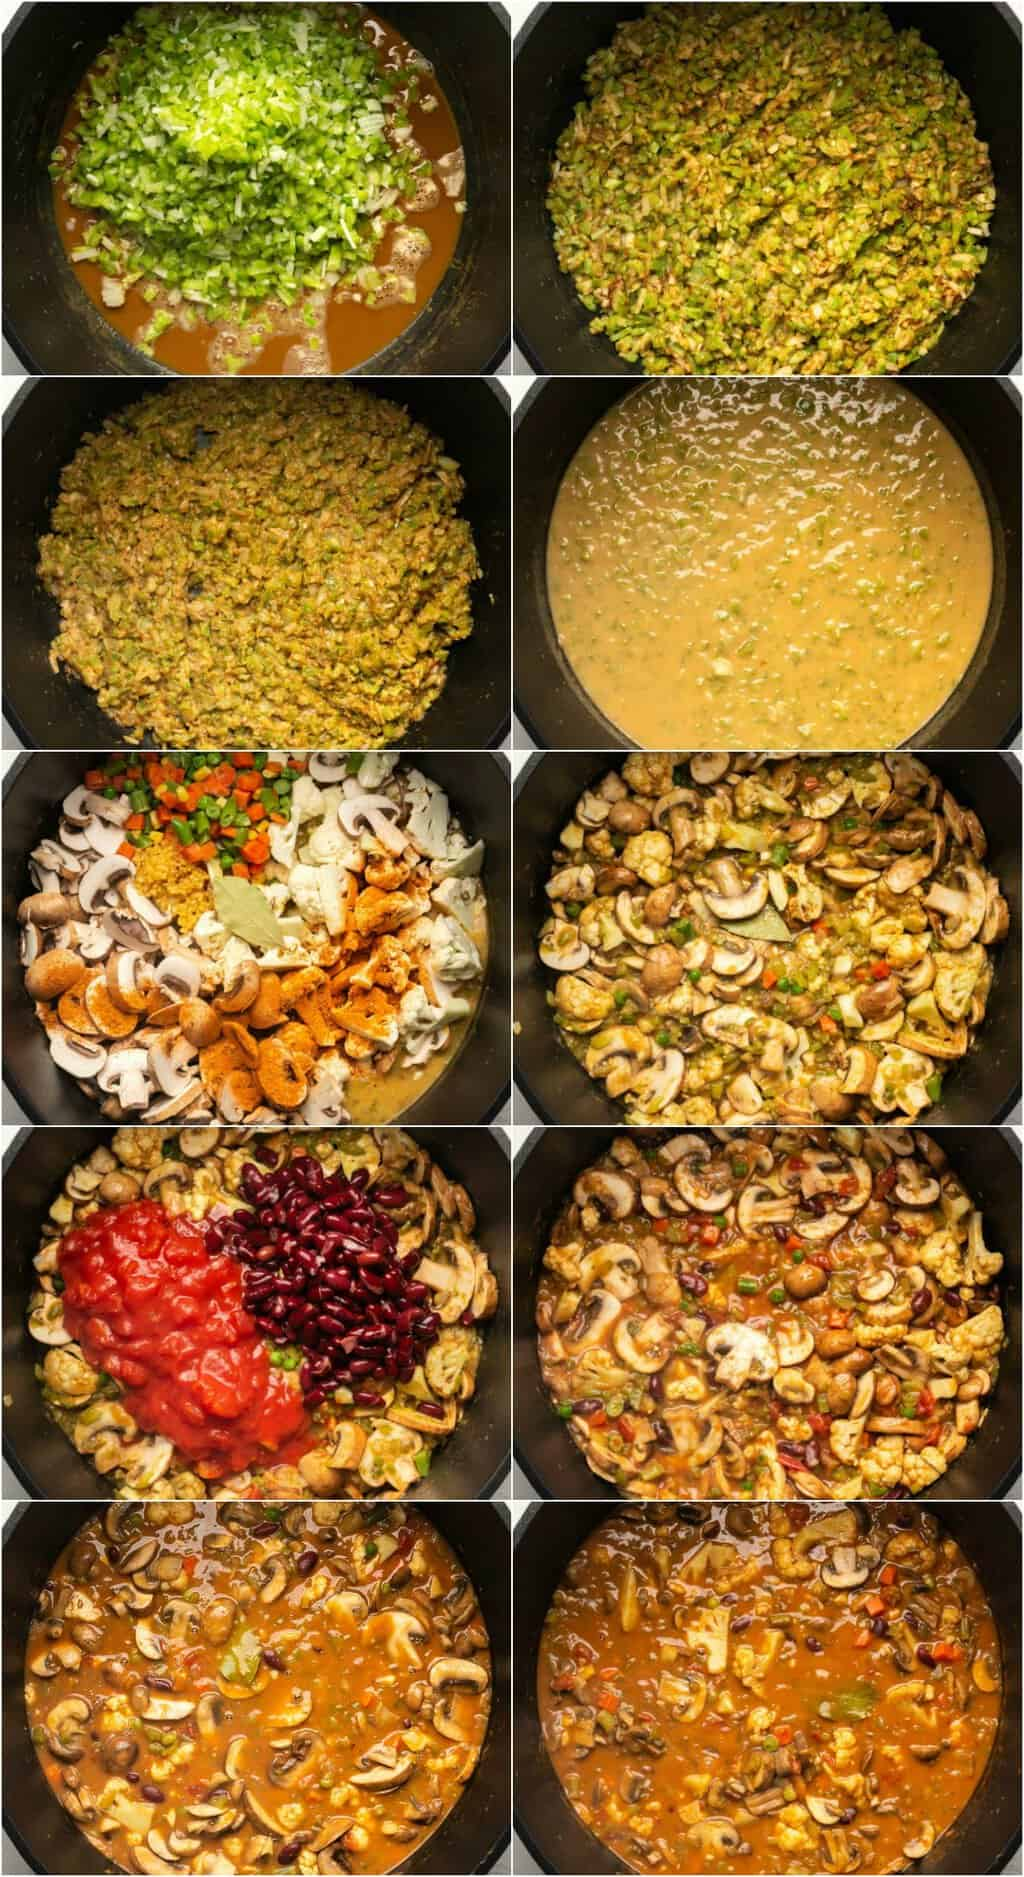 Step by step process photo collage of making vegan gumbo.